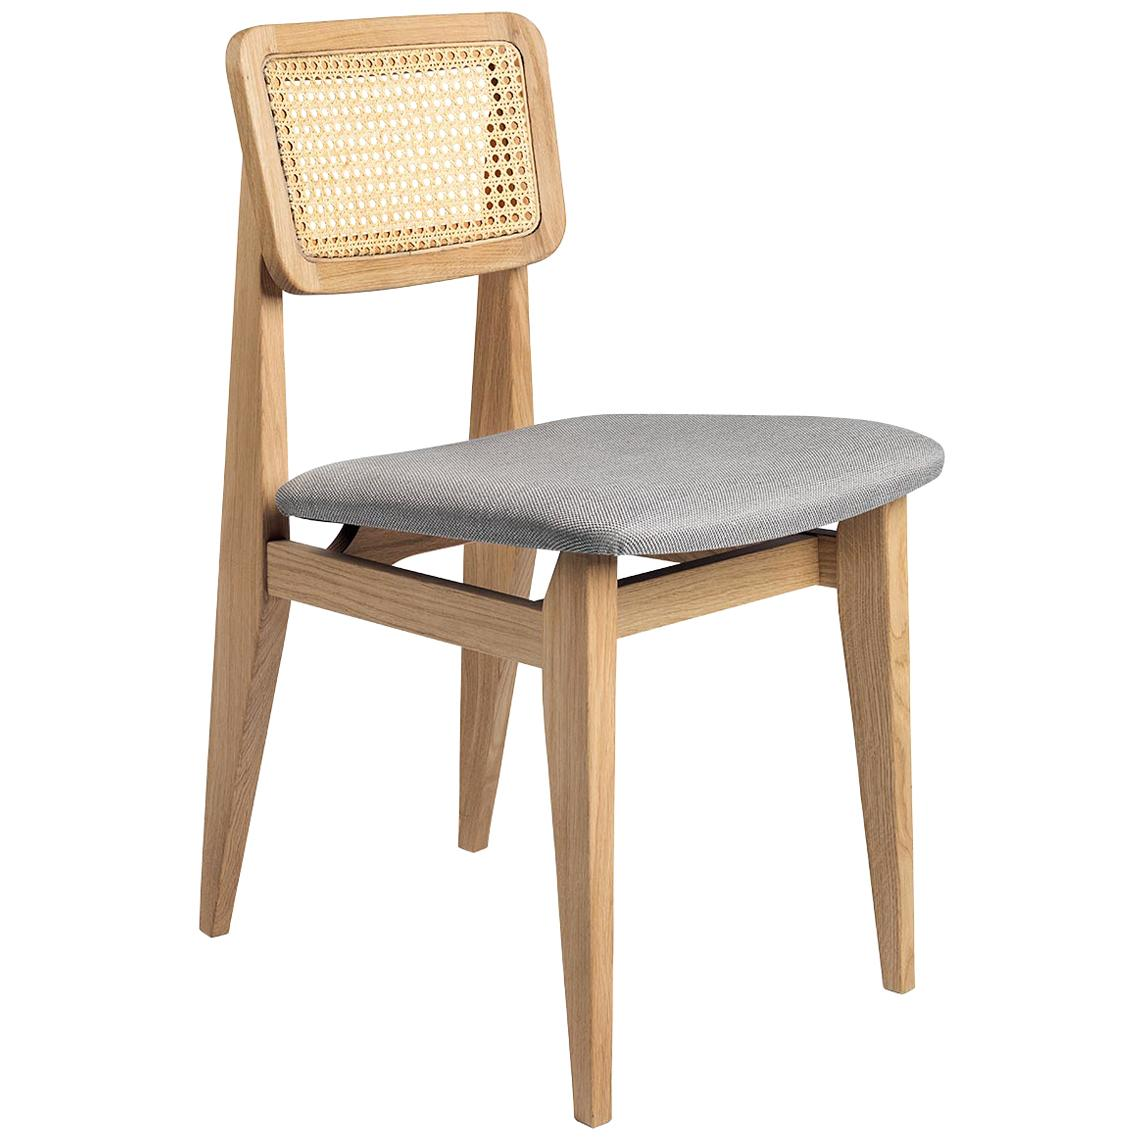 C Chair Dining Chair, Seat Upholstered, French Cane Back, Natural Oak